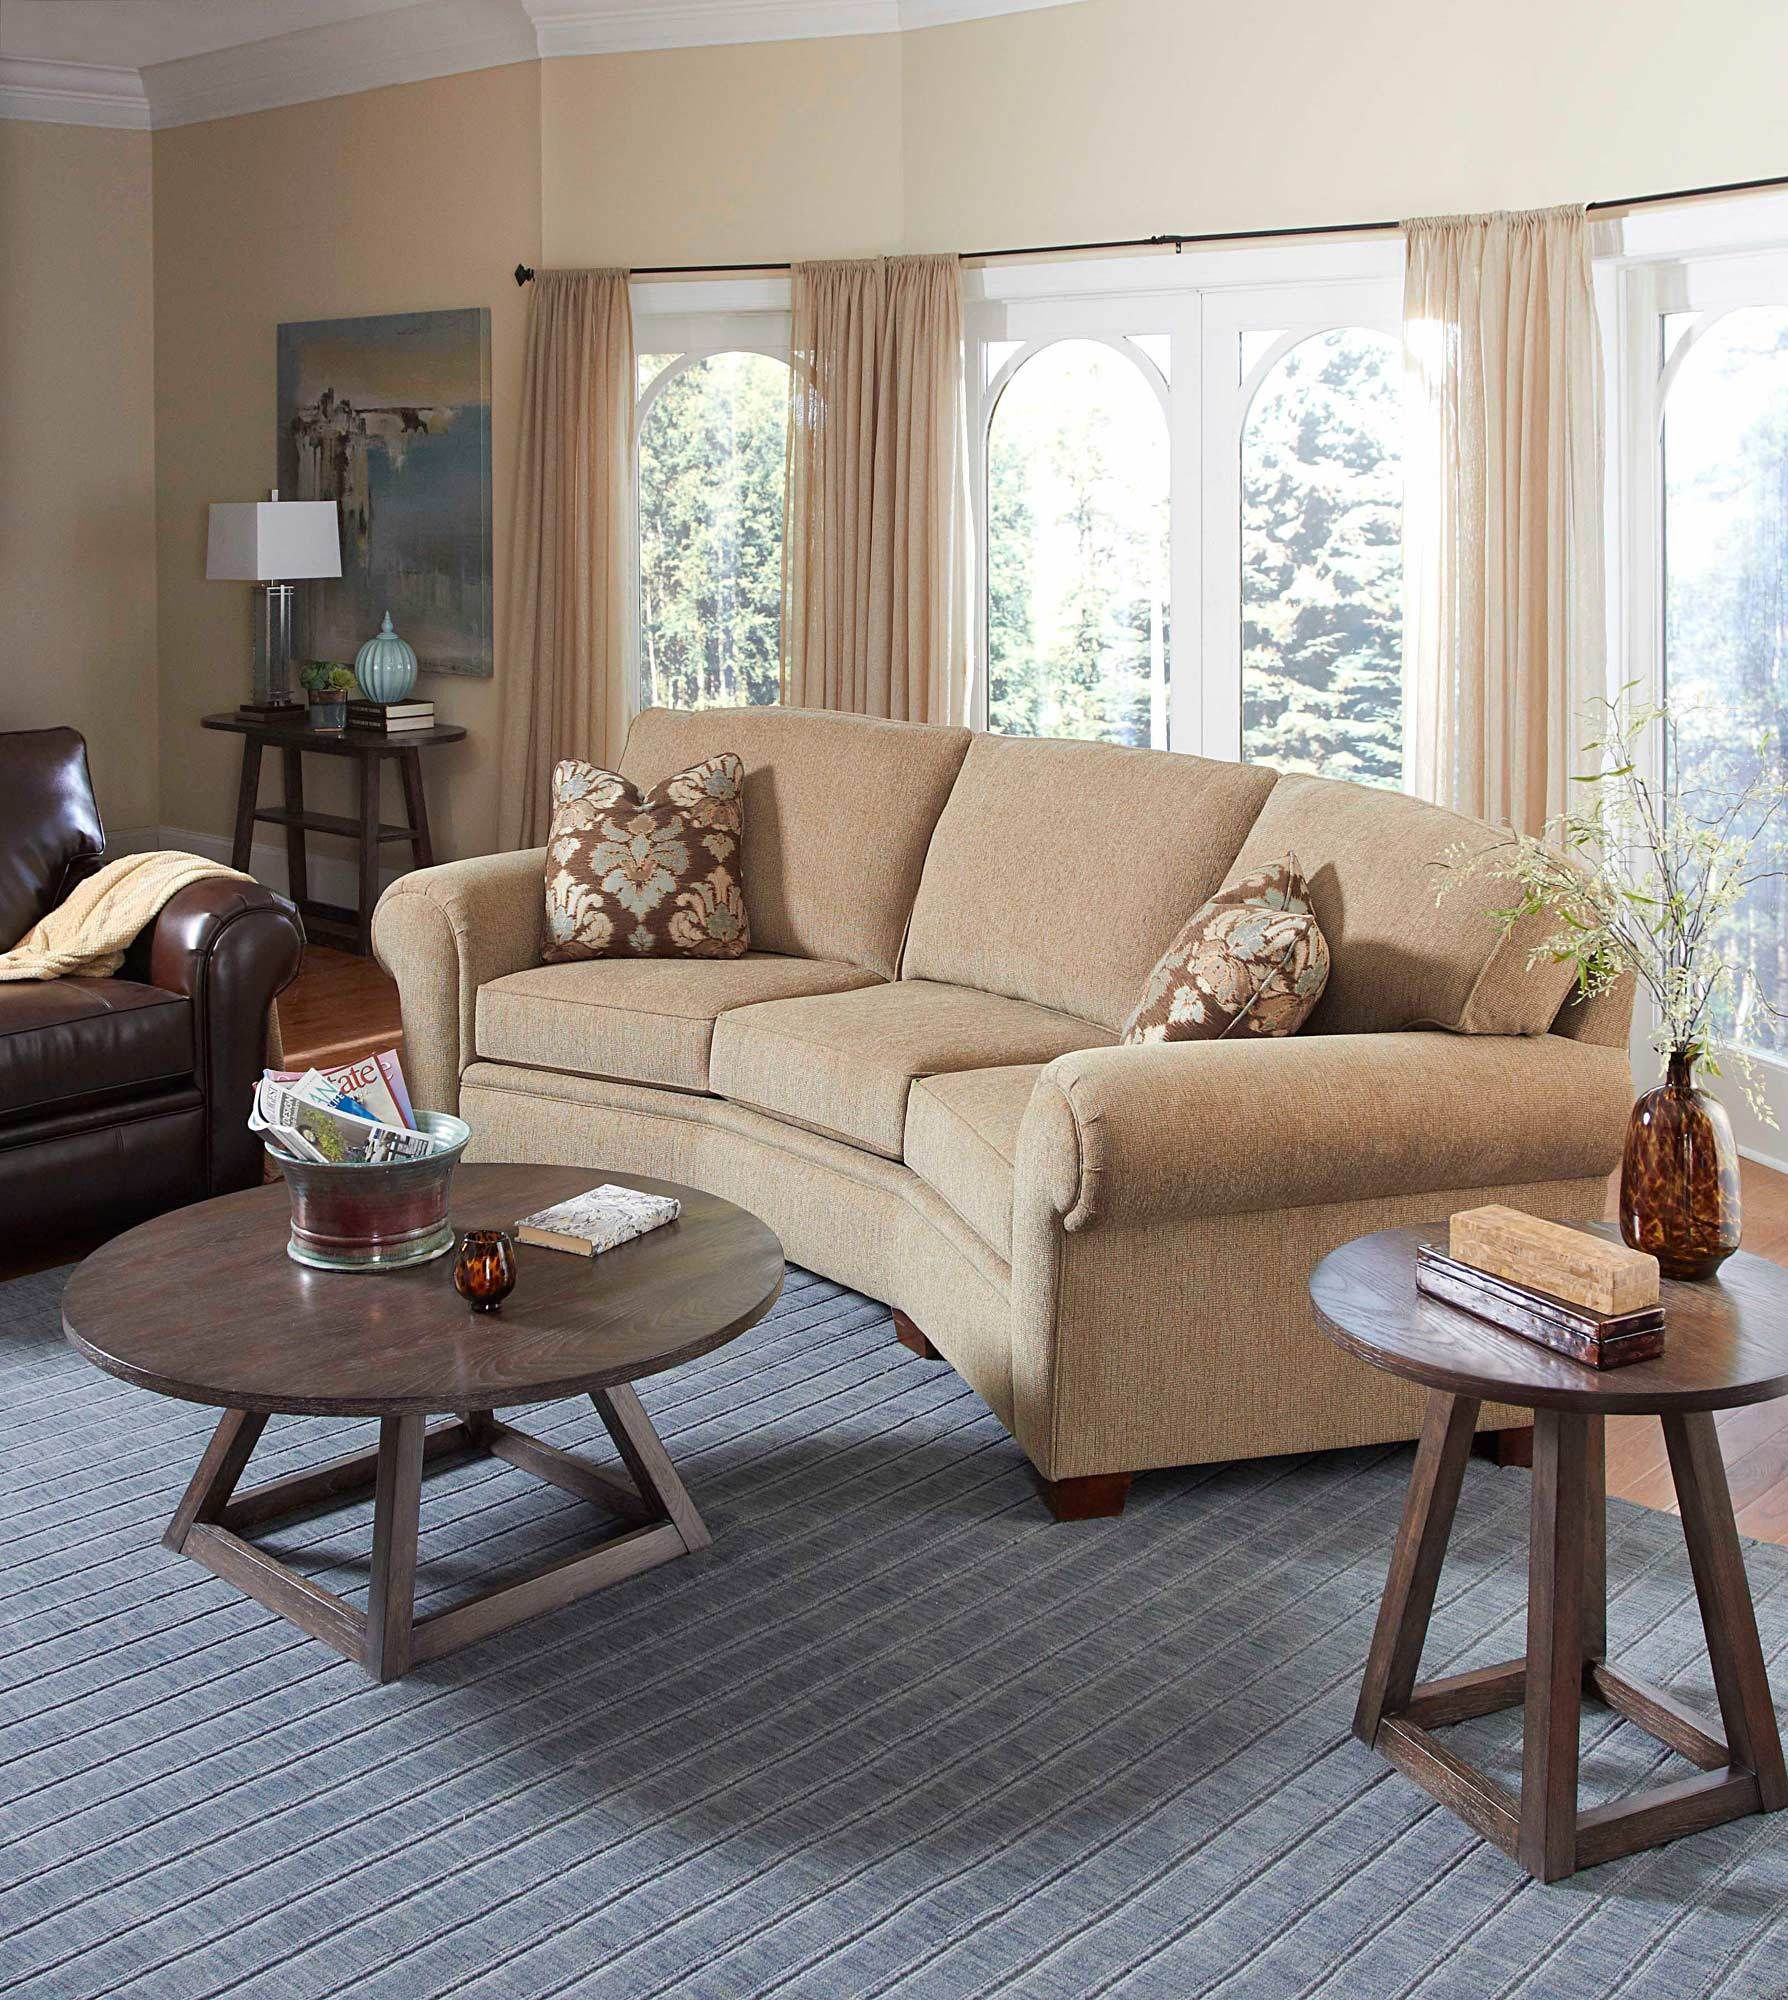 Miller Conversation Sofa By Broyhill Home Gallery Stores Broyhill Furniture Affordable Living Room Furniture Furniture